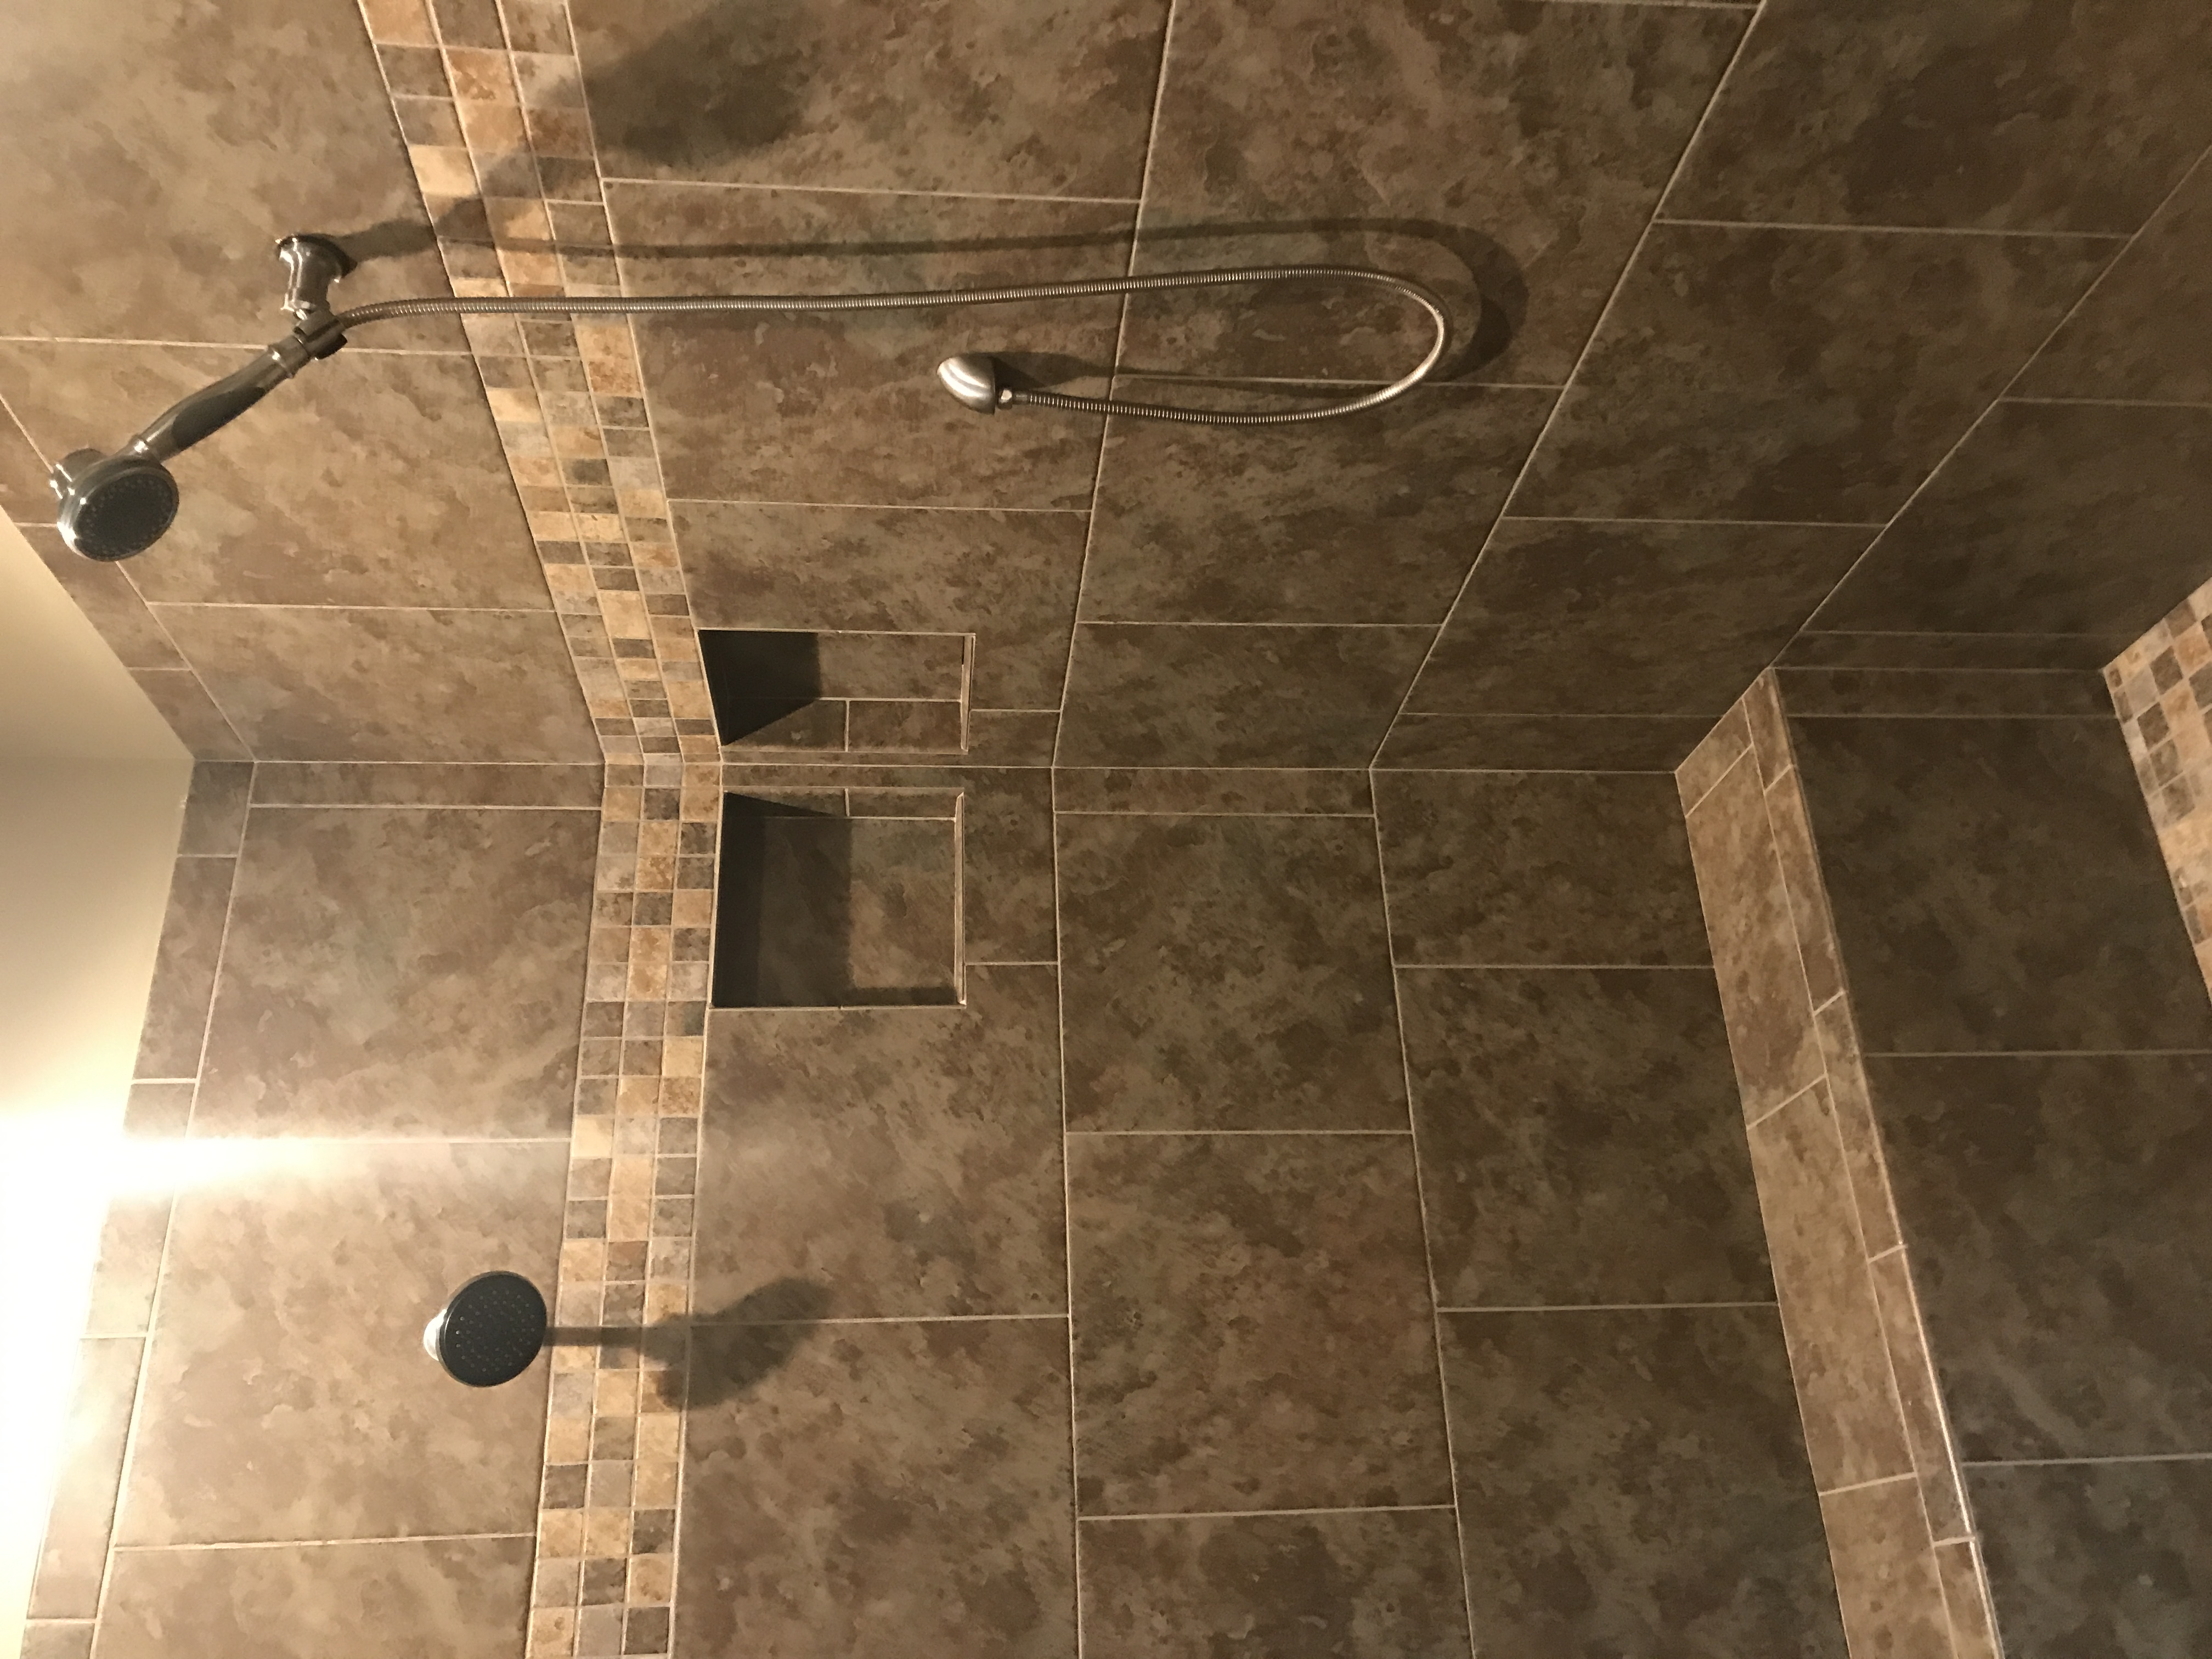 Ceramic tile in shower